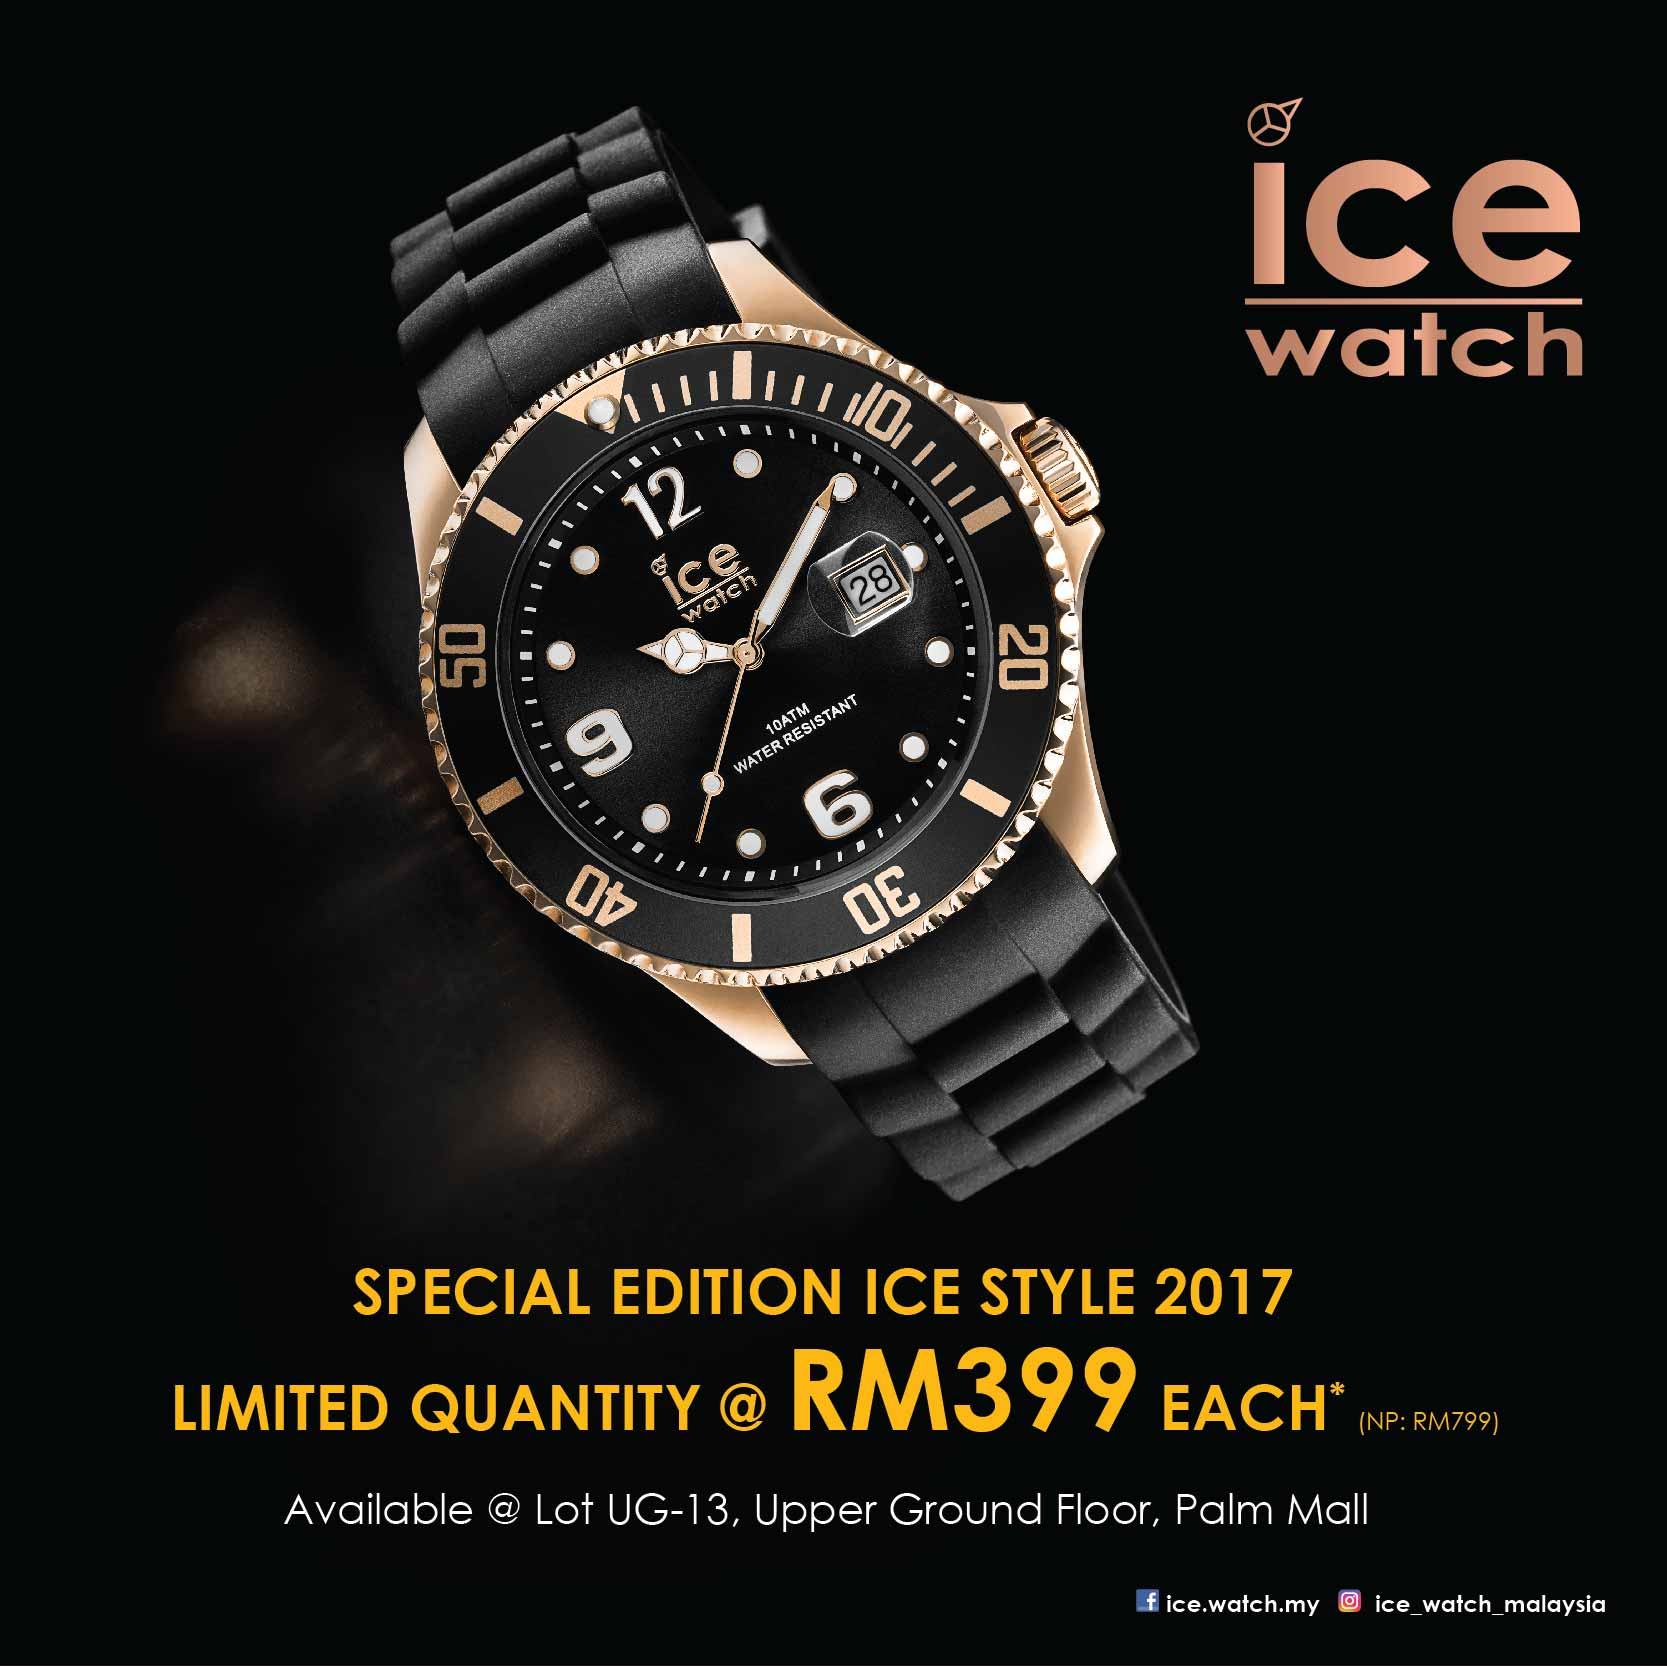 Special Edition ICE 2017